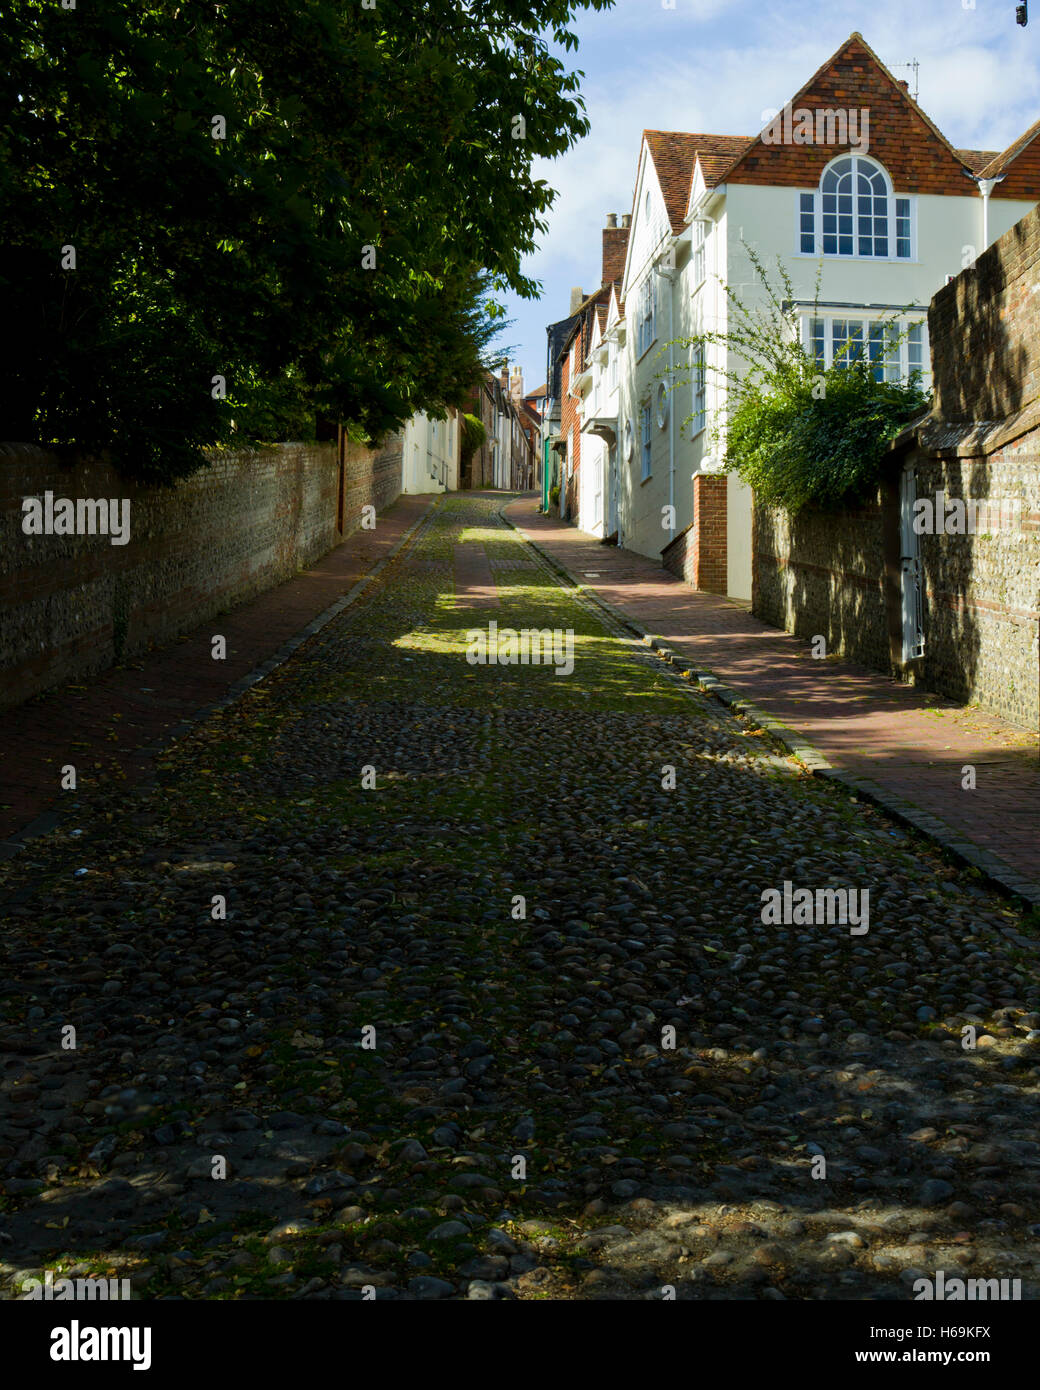 Keere Street Lewes East Sussex England Stock Photo